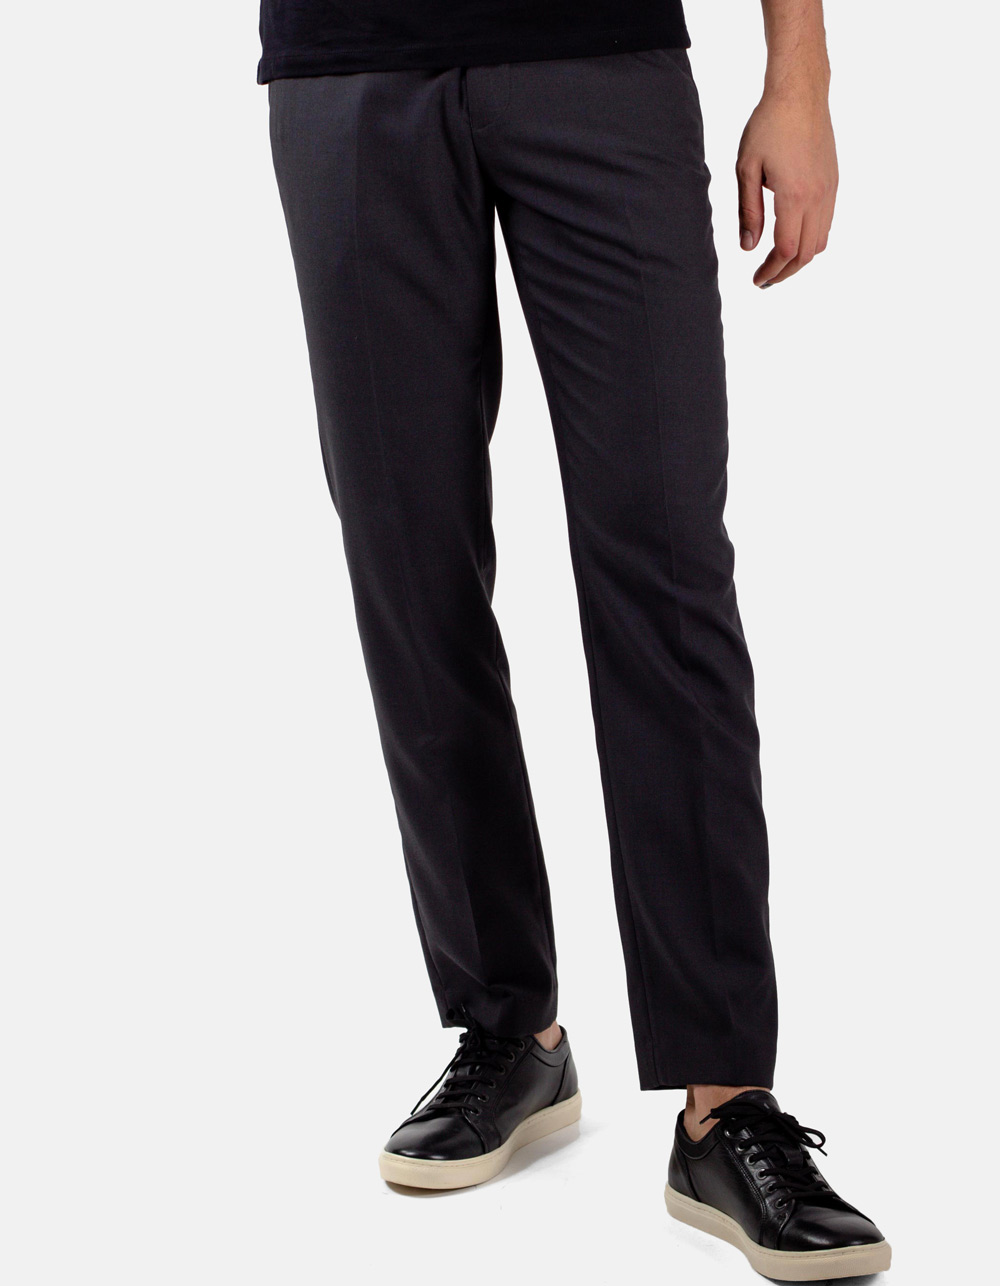 Dark Grey plain trousers